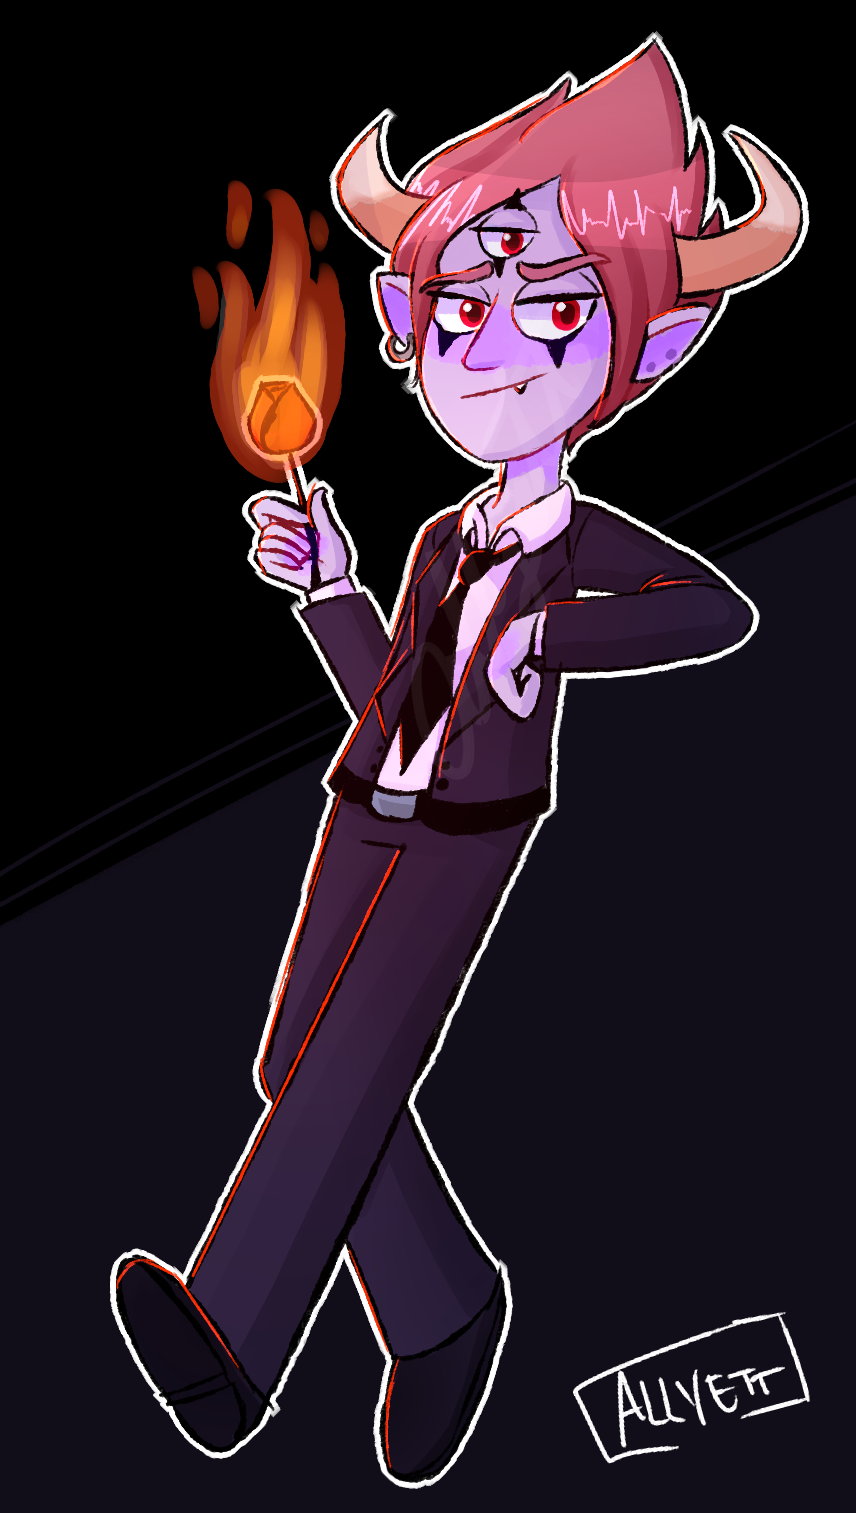 He's so sexy | SVTFOE by Allyett